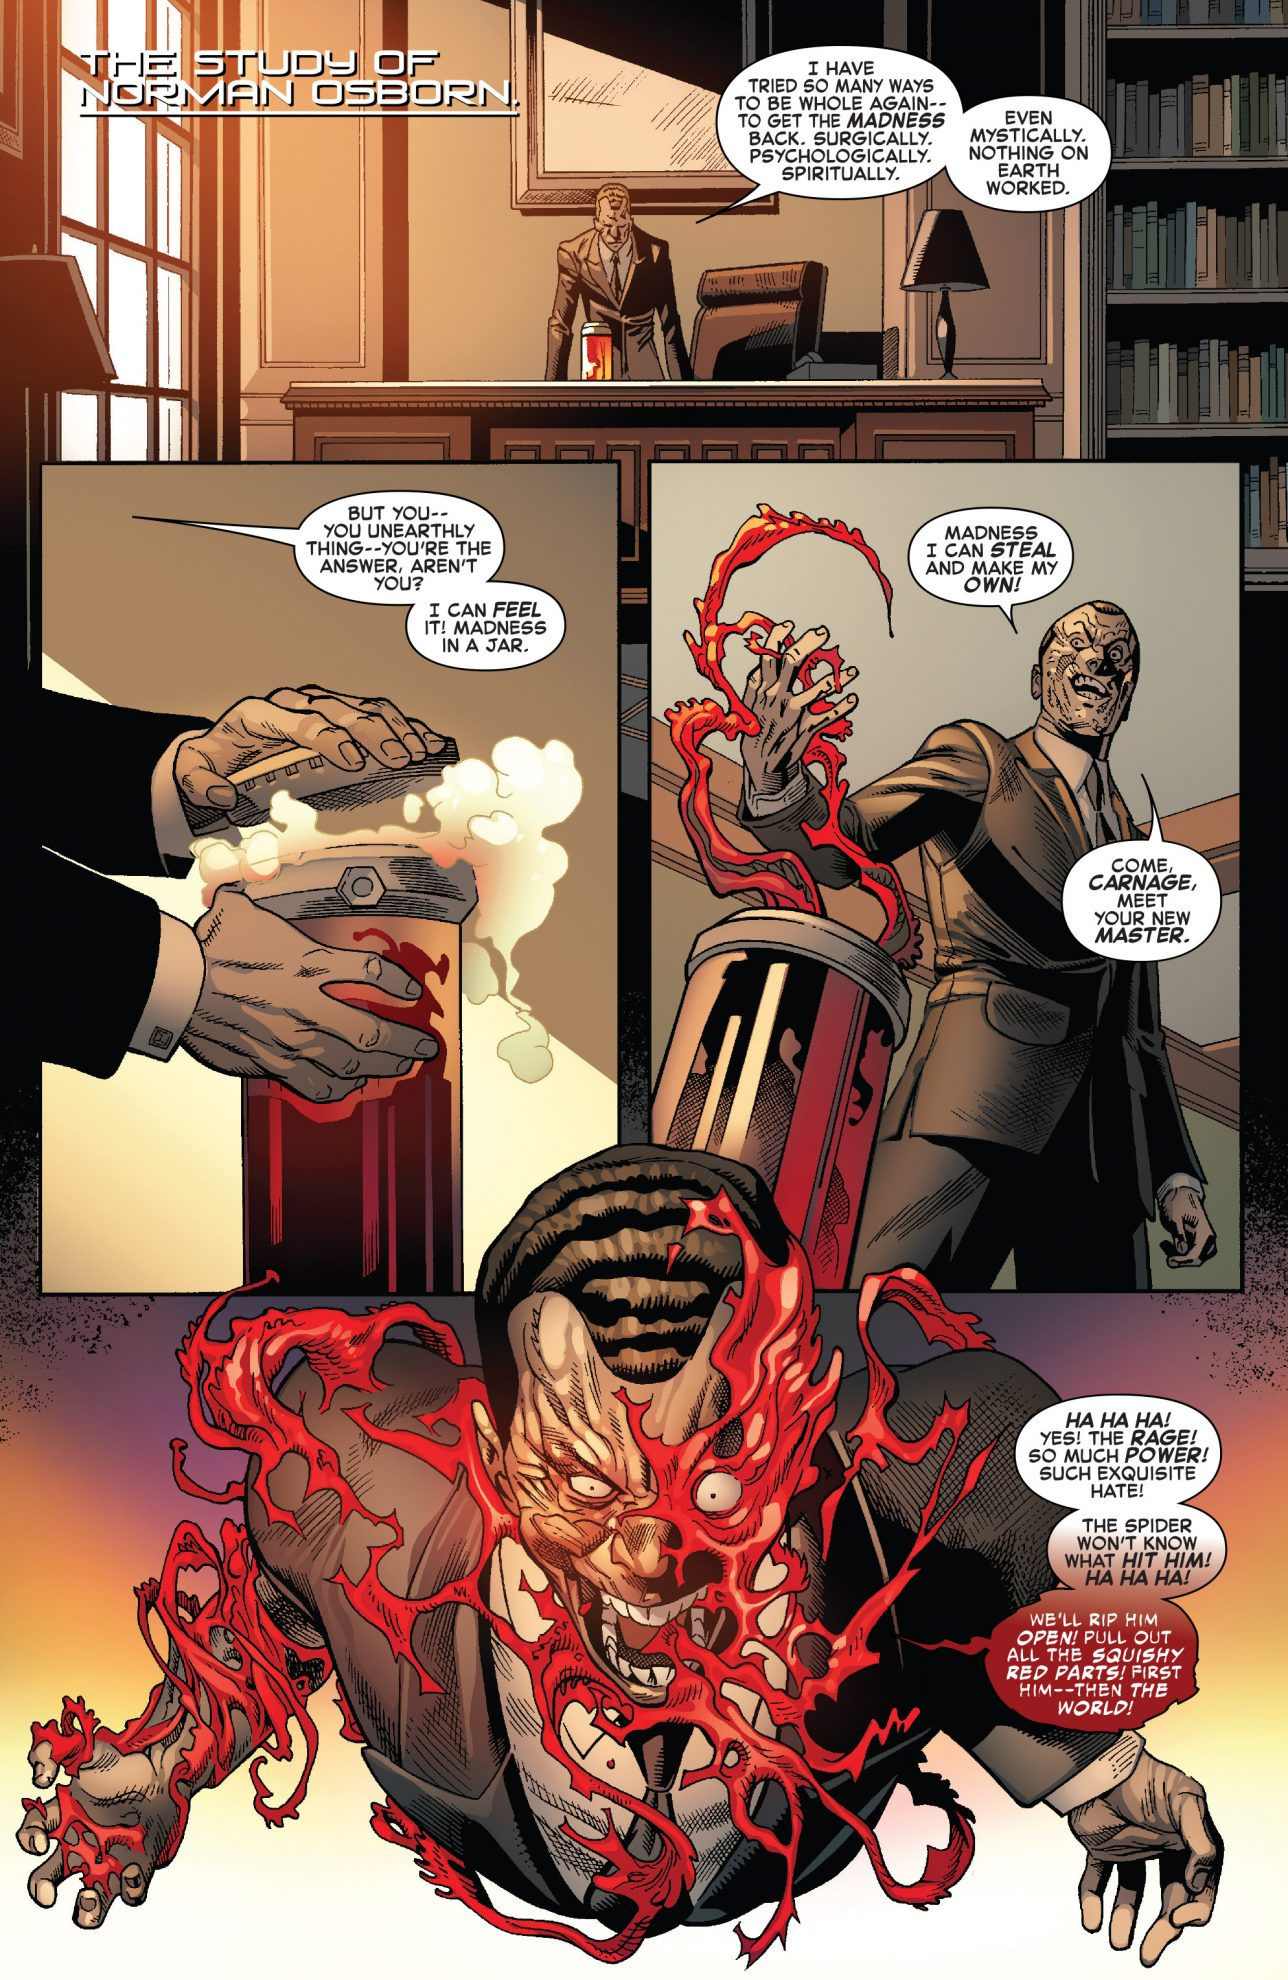 Norman Osborn Becomes The Red Goblin